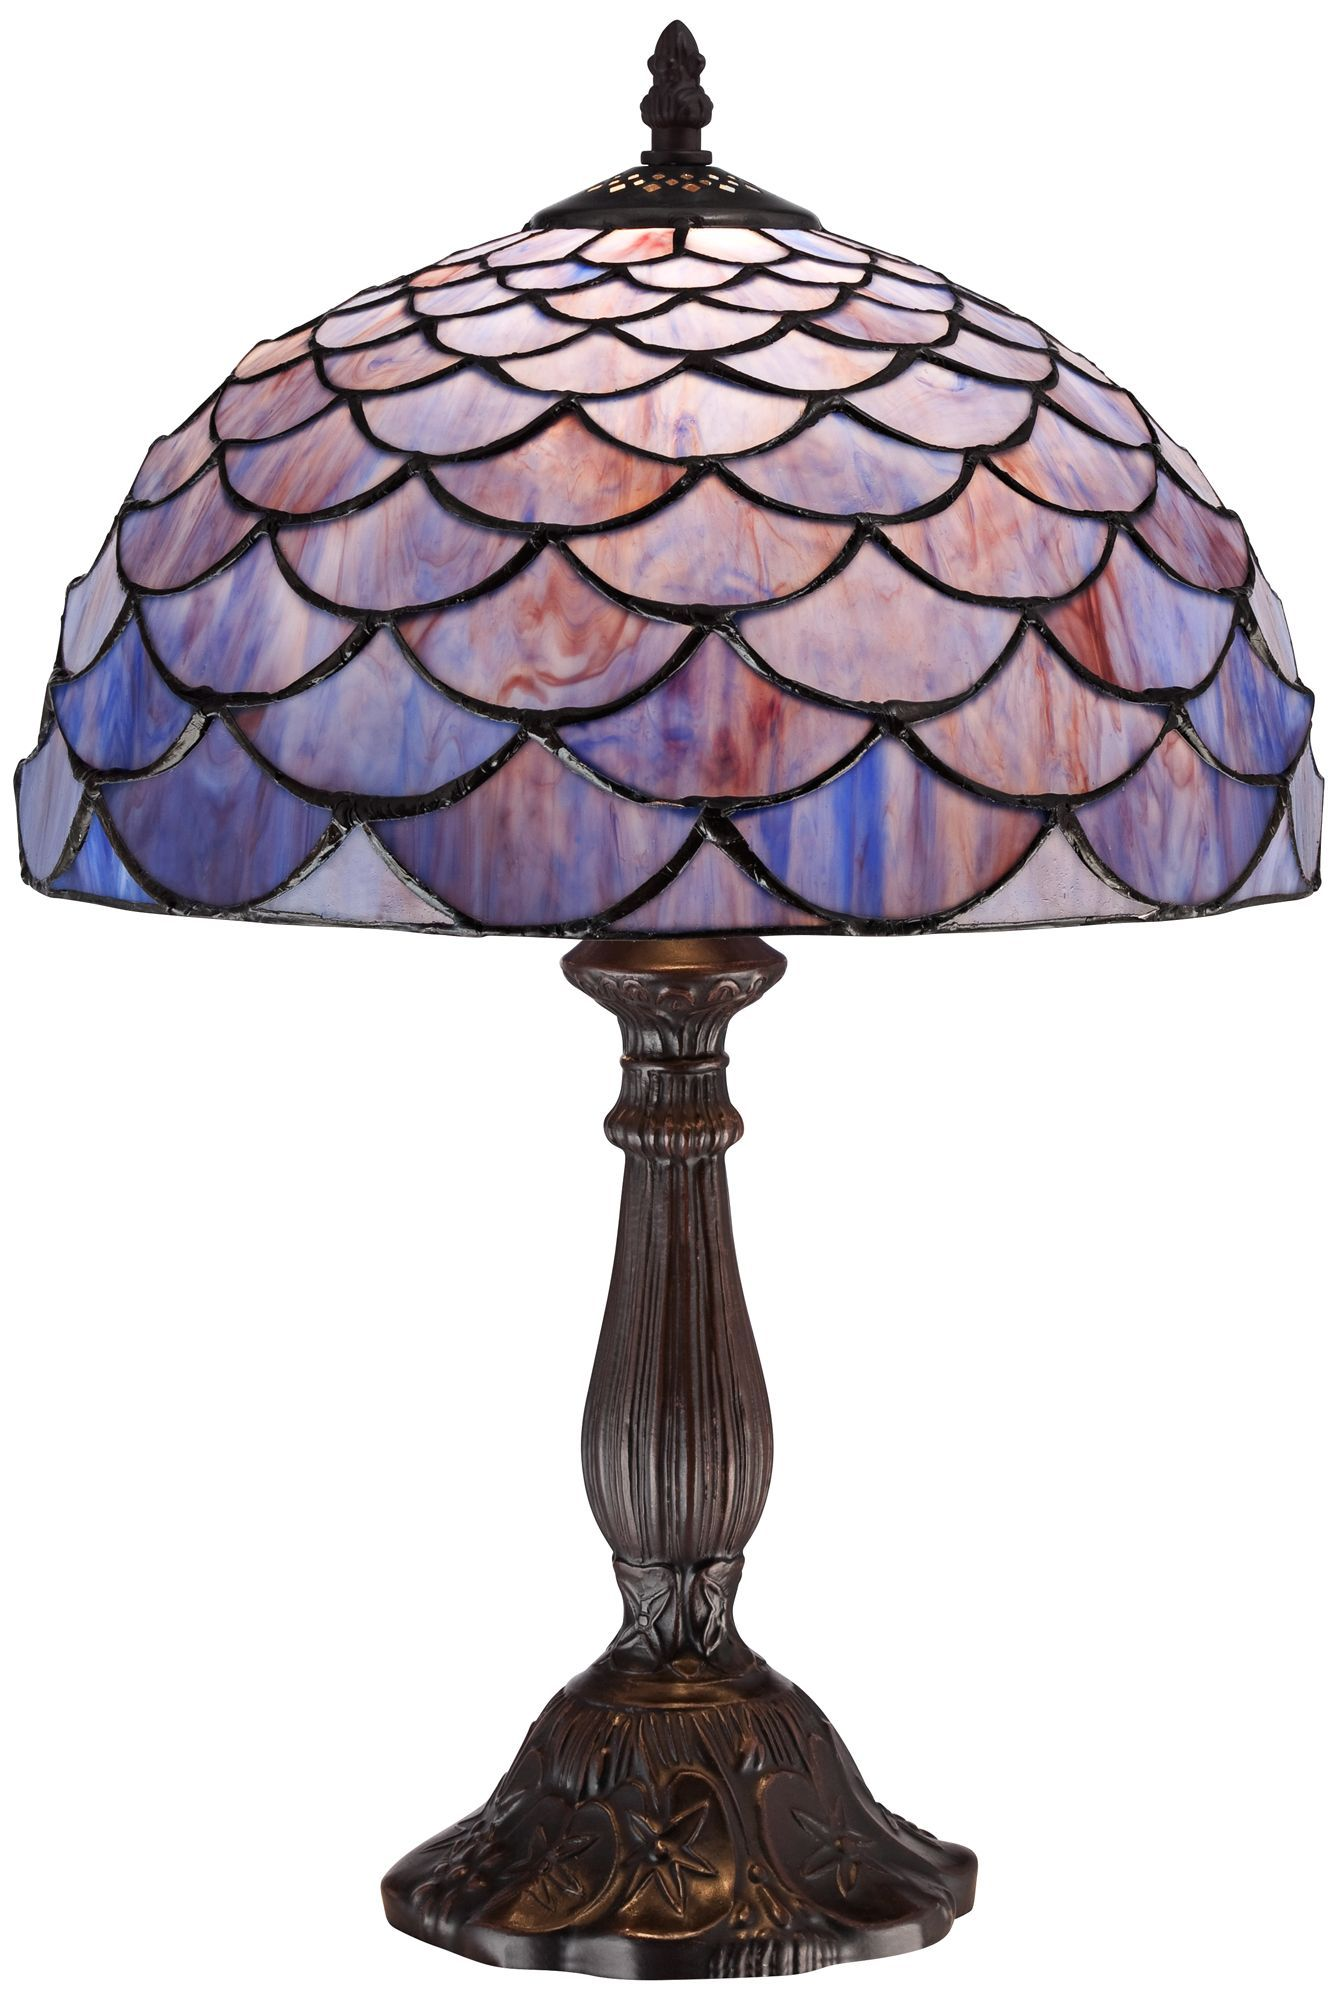 blue shell tiffany style accent table lamp lamps fpx backyard shade structures chair side tables living room drum seat with back brass inexpensive end for classic modern chairs